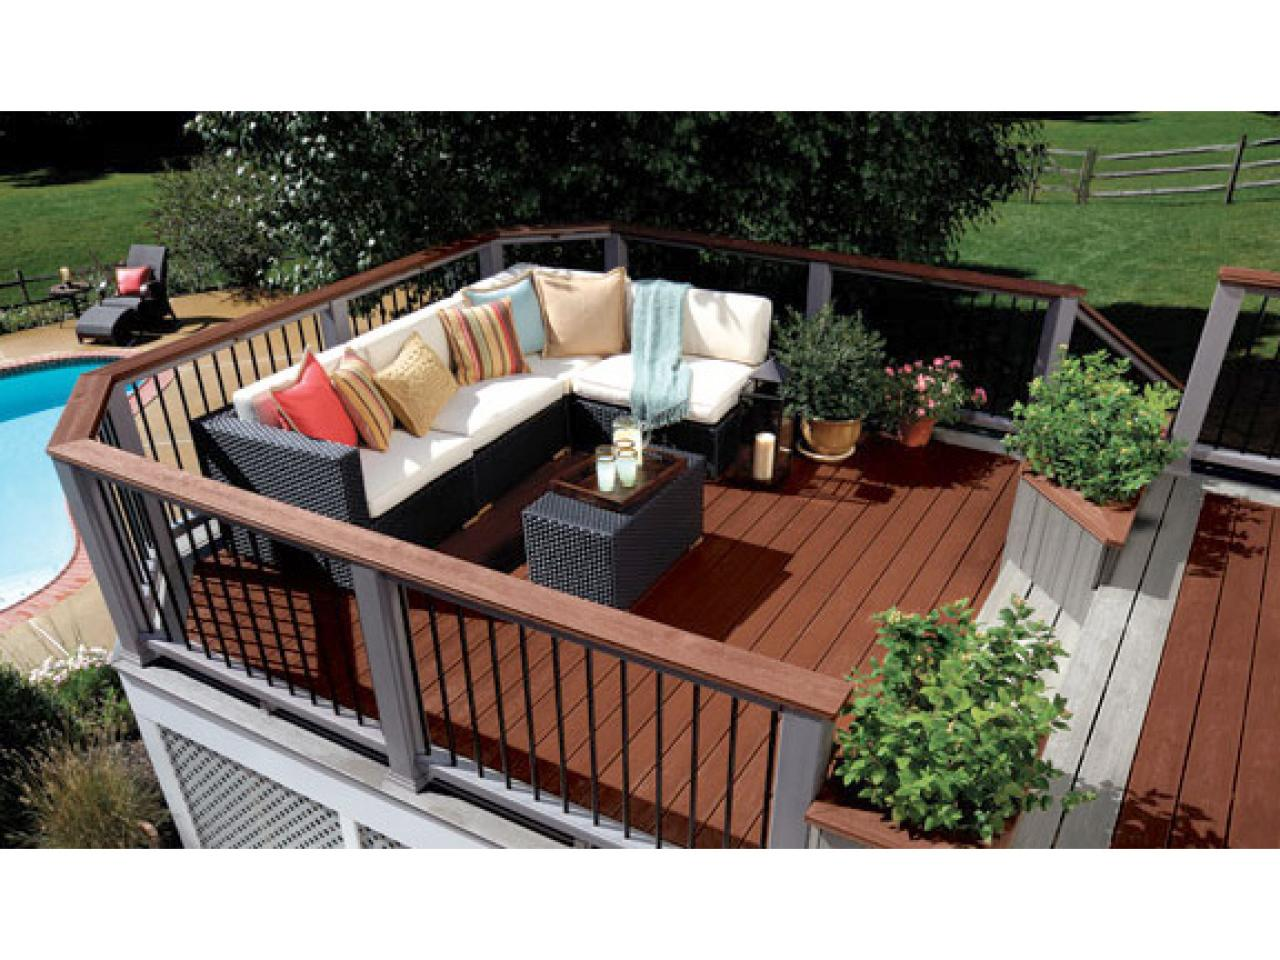 Budgeting for a deck hgtv Deck design ideas